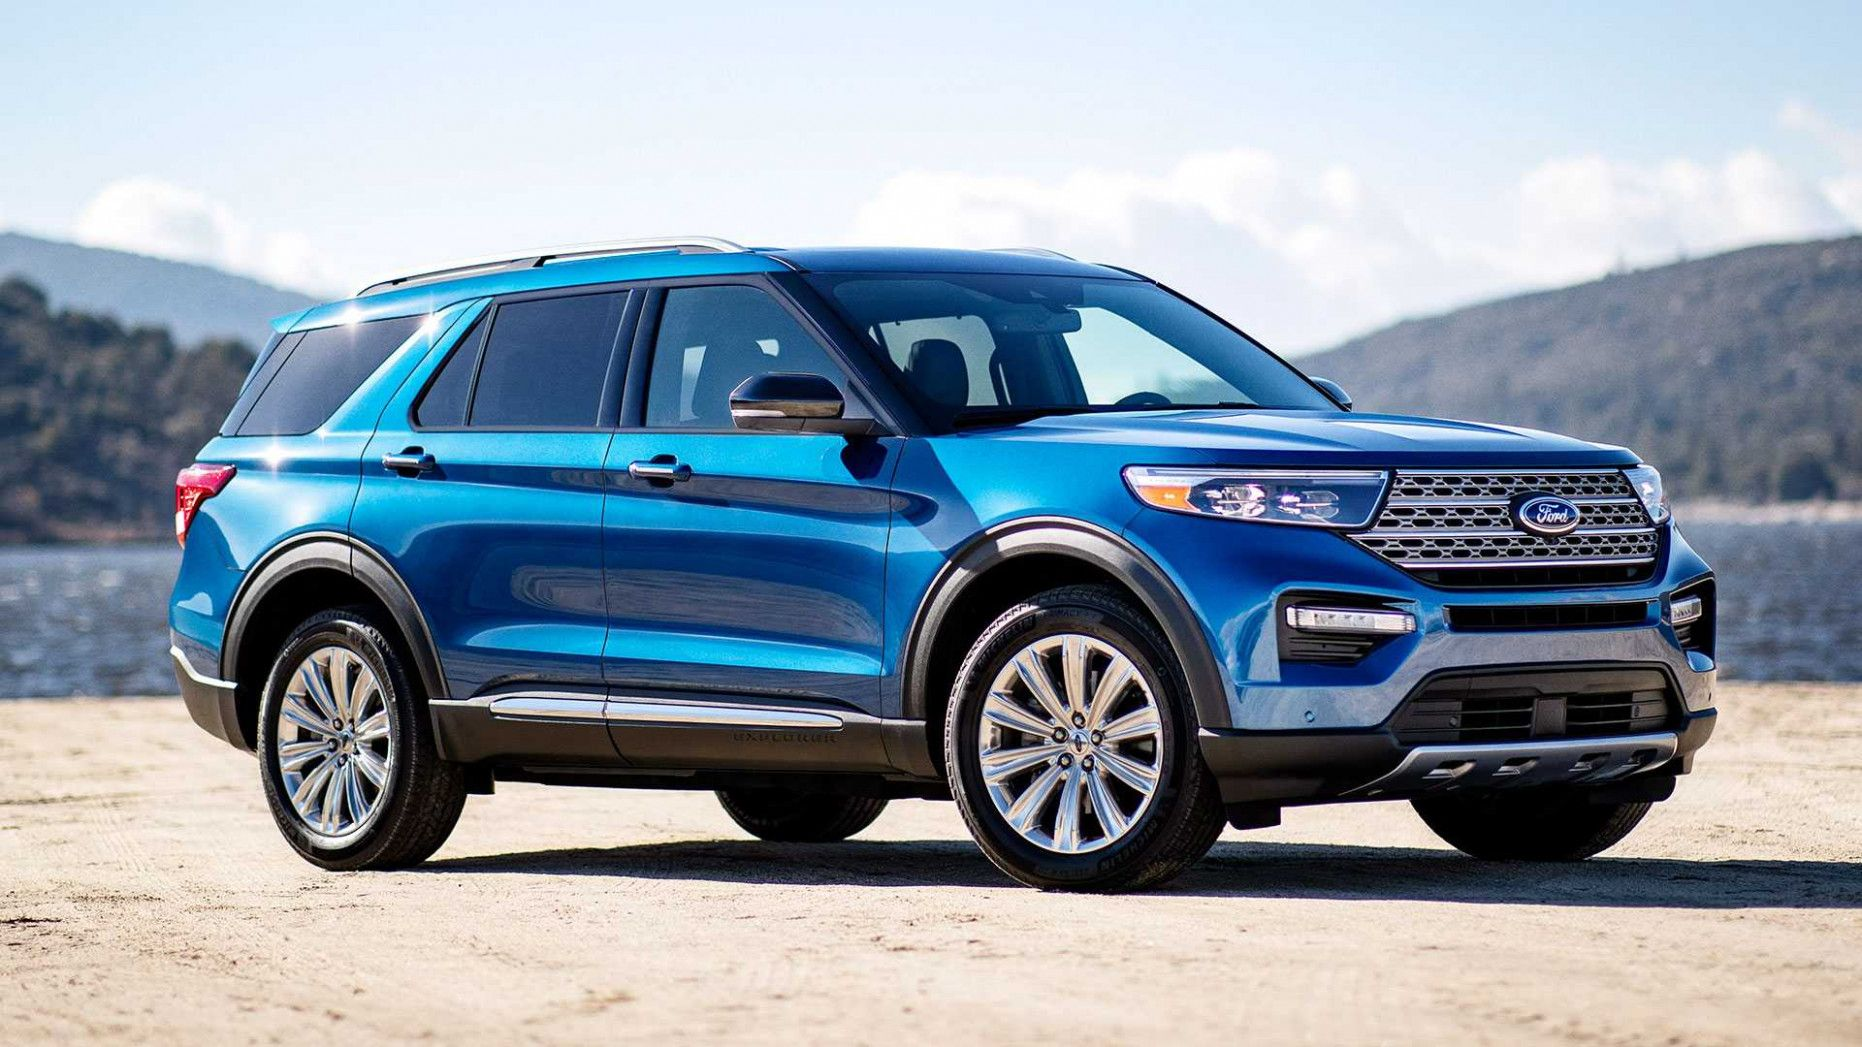 Ford Usa Explorer 2020 Picture In 2020 Ford Explorer 2020 Ford